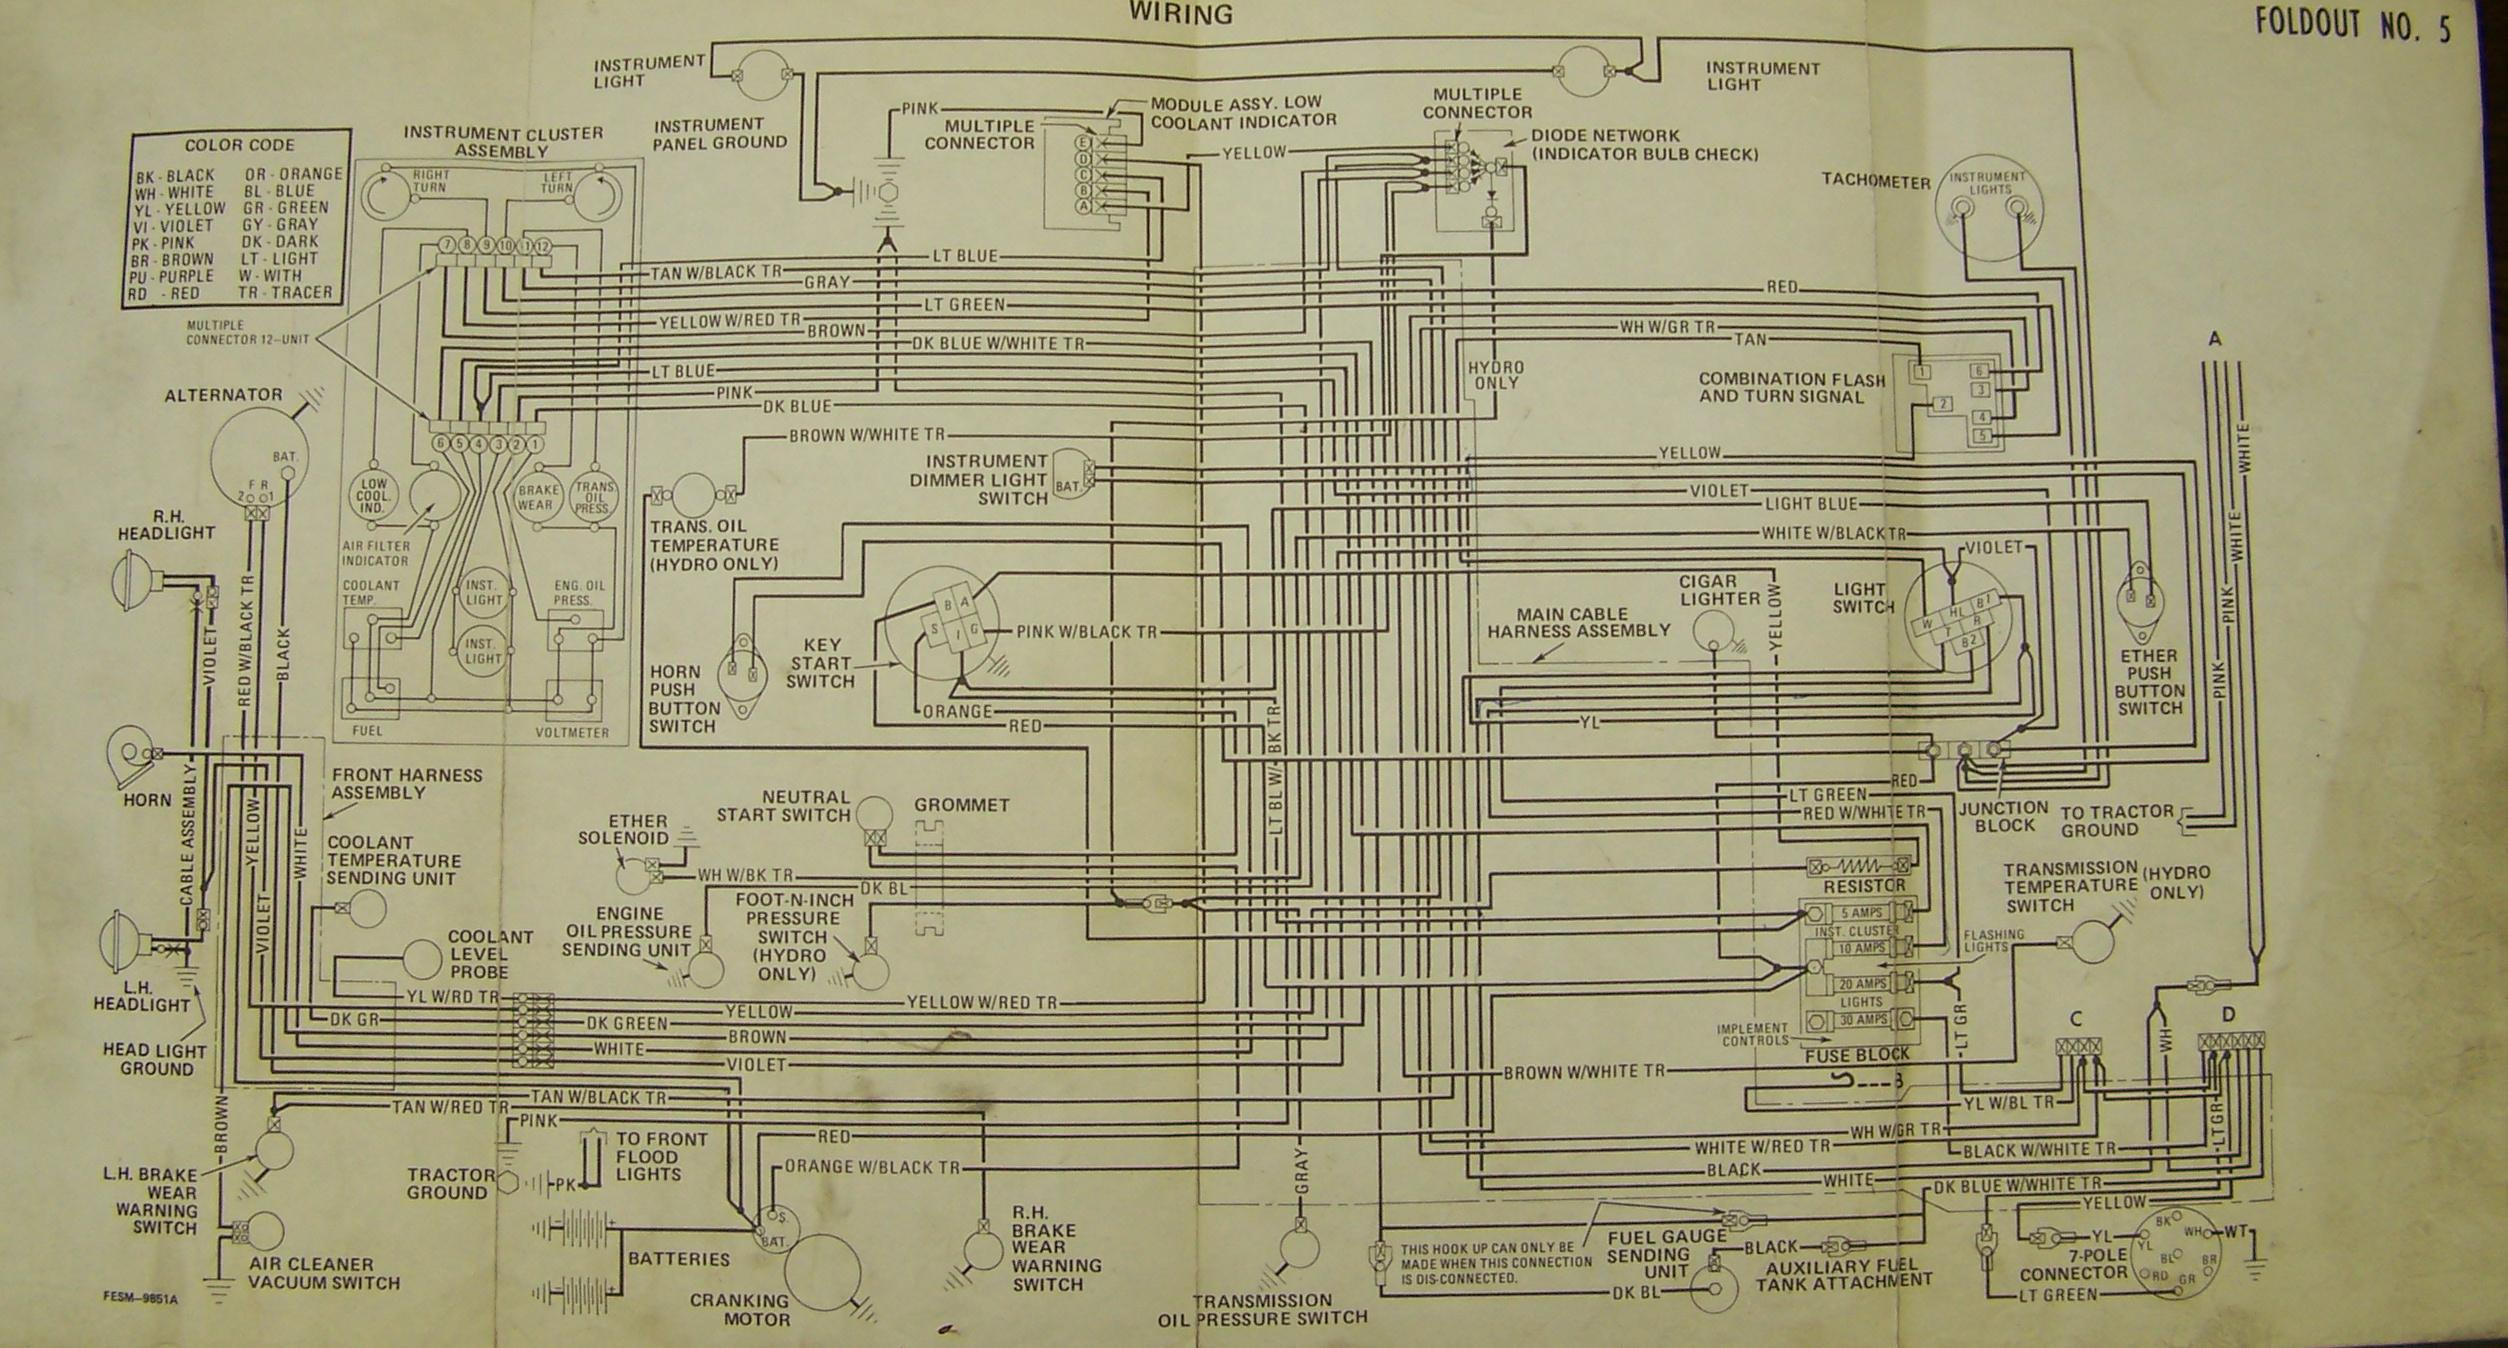 86series5 ih tractor wiring diagram ih tractor power steering \u2022 free wiring international 1086 wiring diagram at edmiracle.co